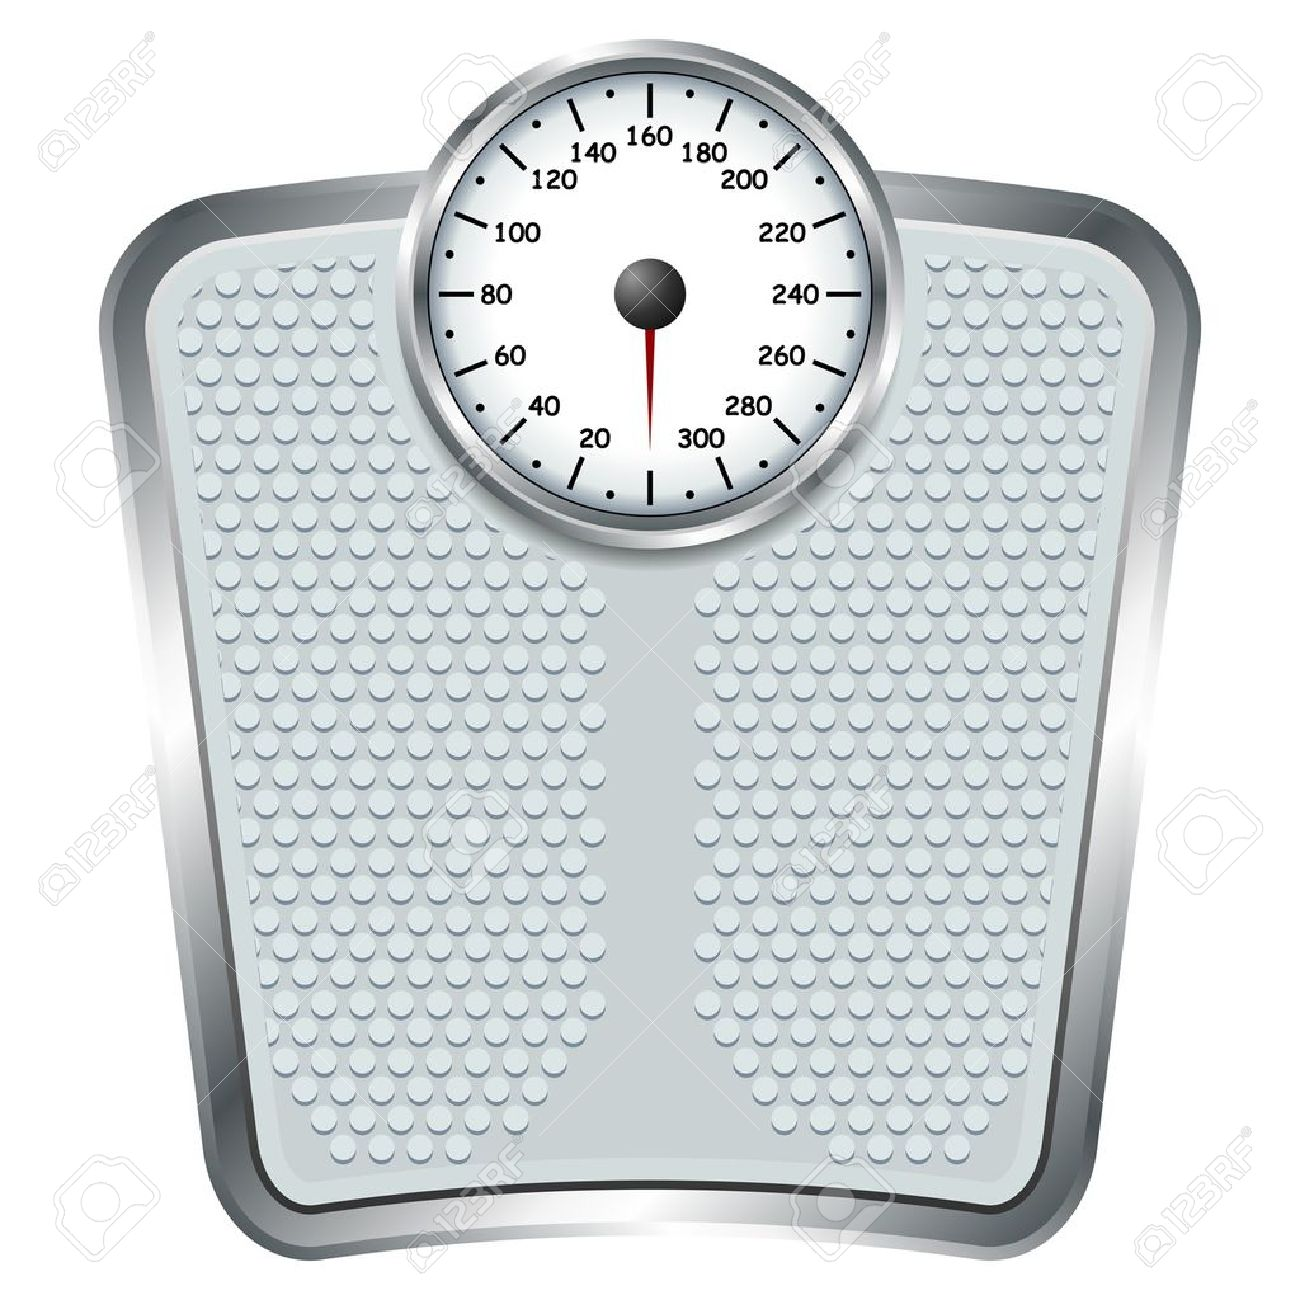 Free Bathroom Scale Cliparts, Download Free Clip Art, Free Clip Art.